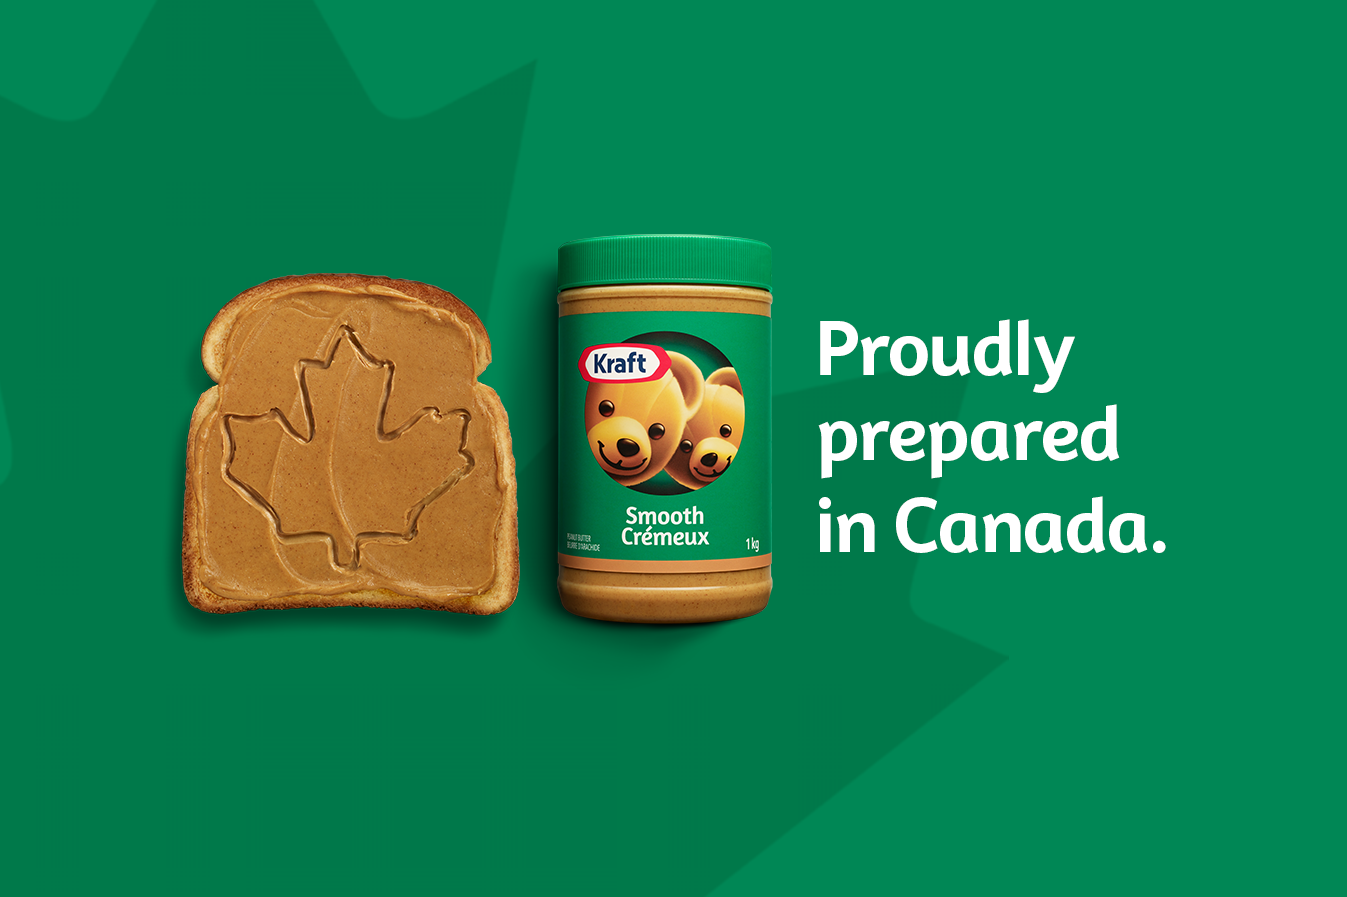 Proudly prepared in Canada